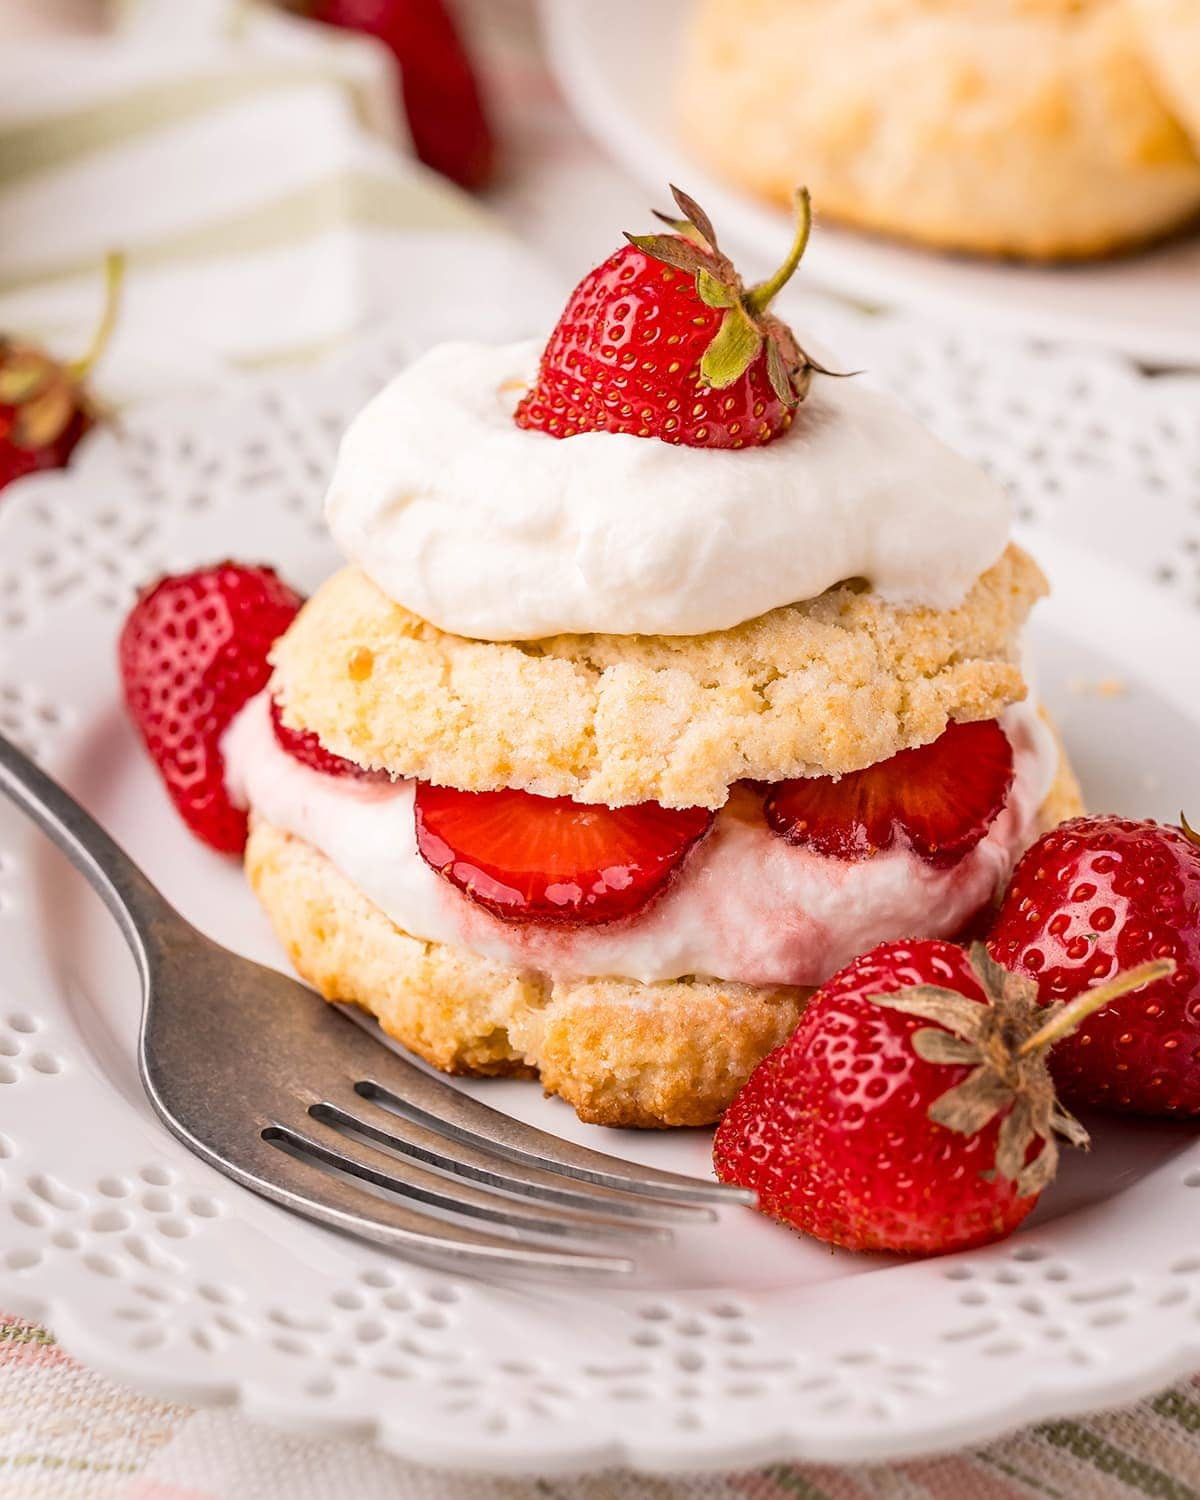 A strawberry shortcake on a white plate. The biscuit is cut in half with whipped cream, and strawberries inside, then the second half of the biscuit, and more whipped cream and a strawberry on top.